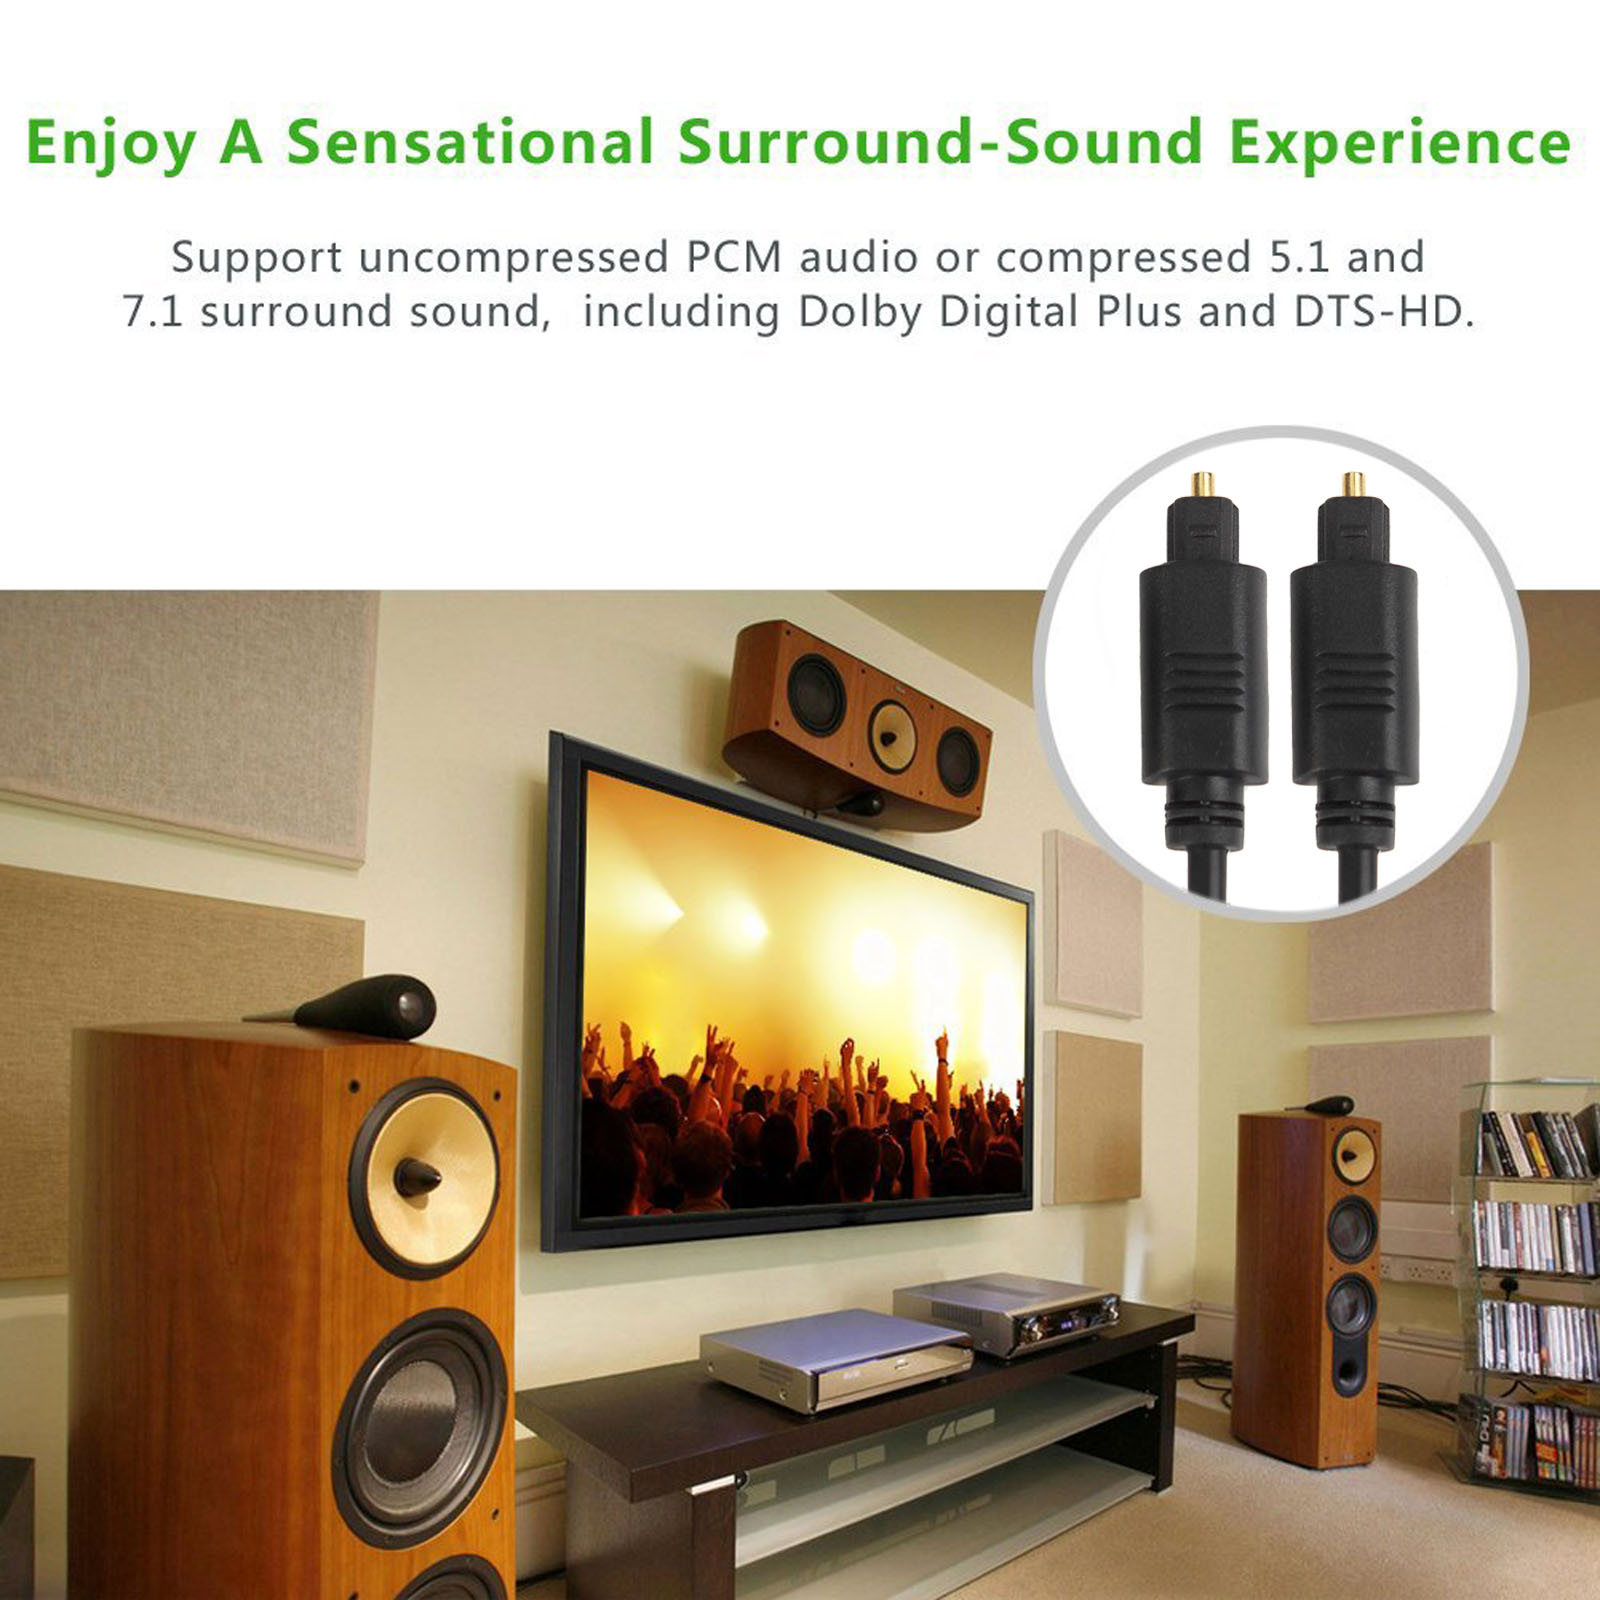 Optical Audio Cable Digital Cord For Home Theater Sound Wiring Components An Ecommerce Leader Specializing In High Quality Cables And Accessories Computer Consumer Electronics Established 2010 We Have